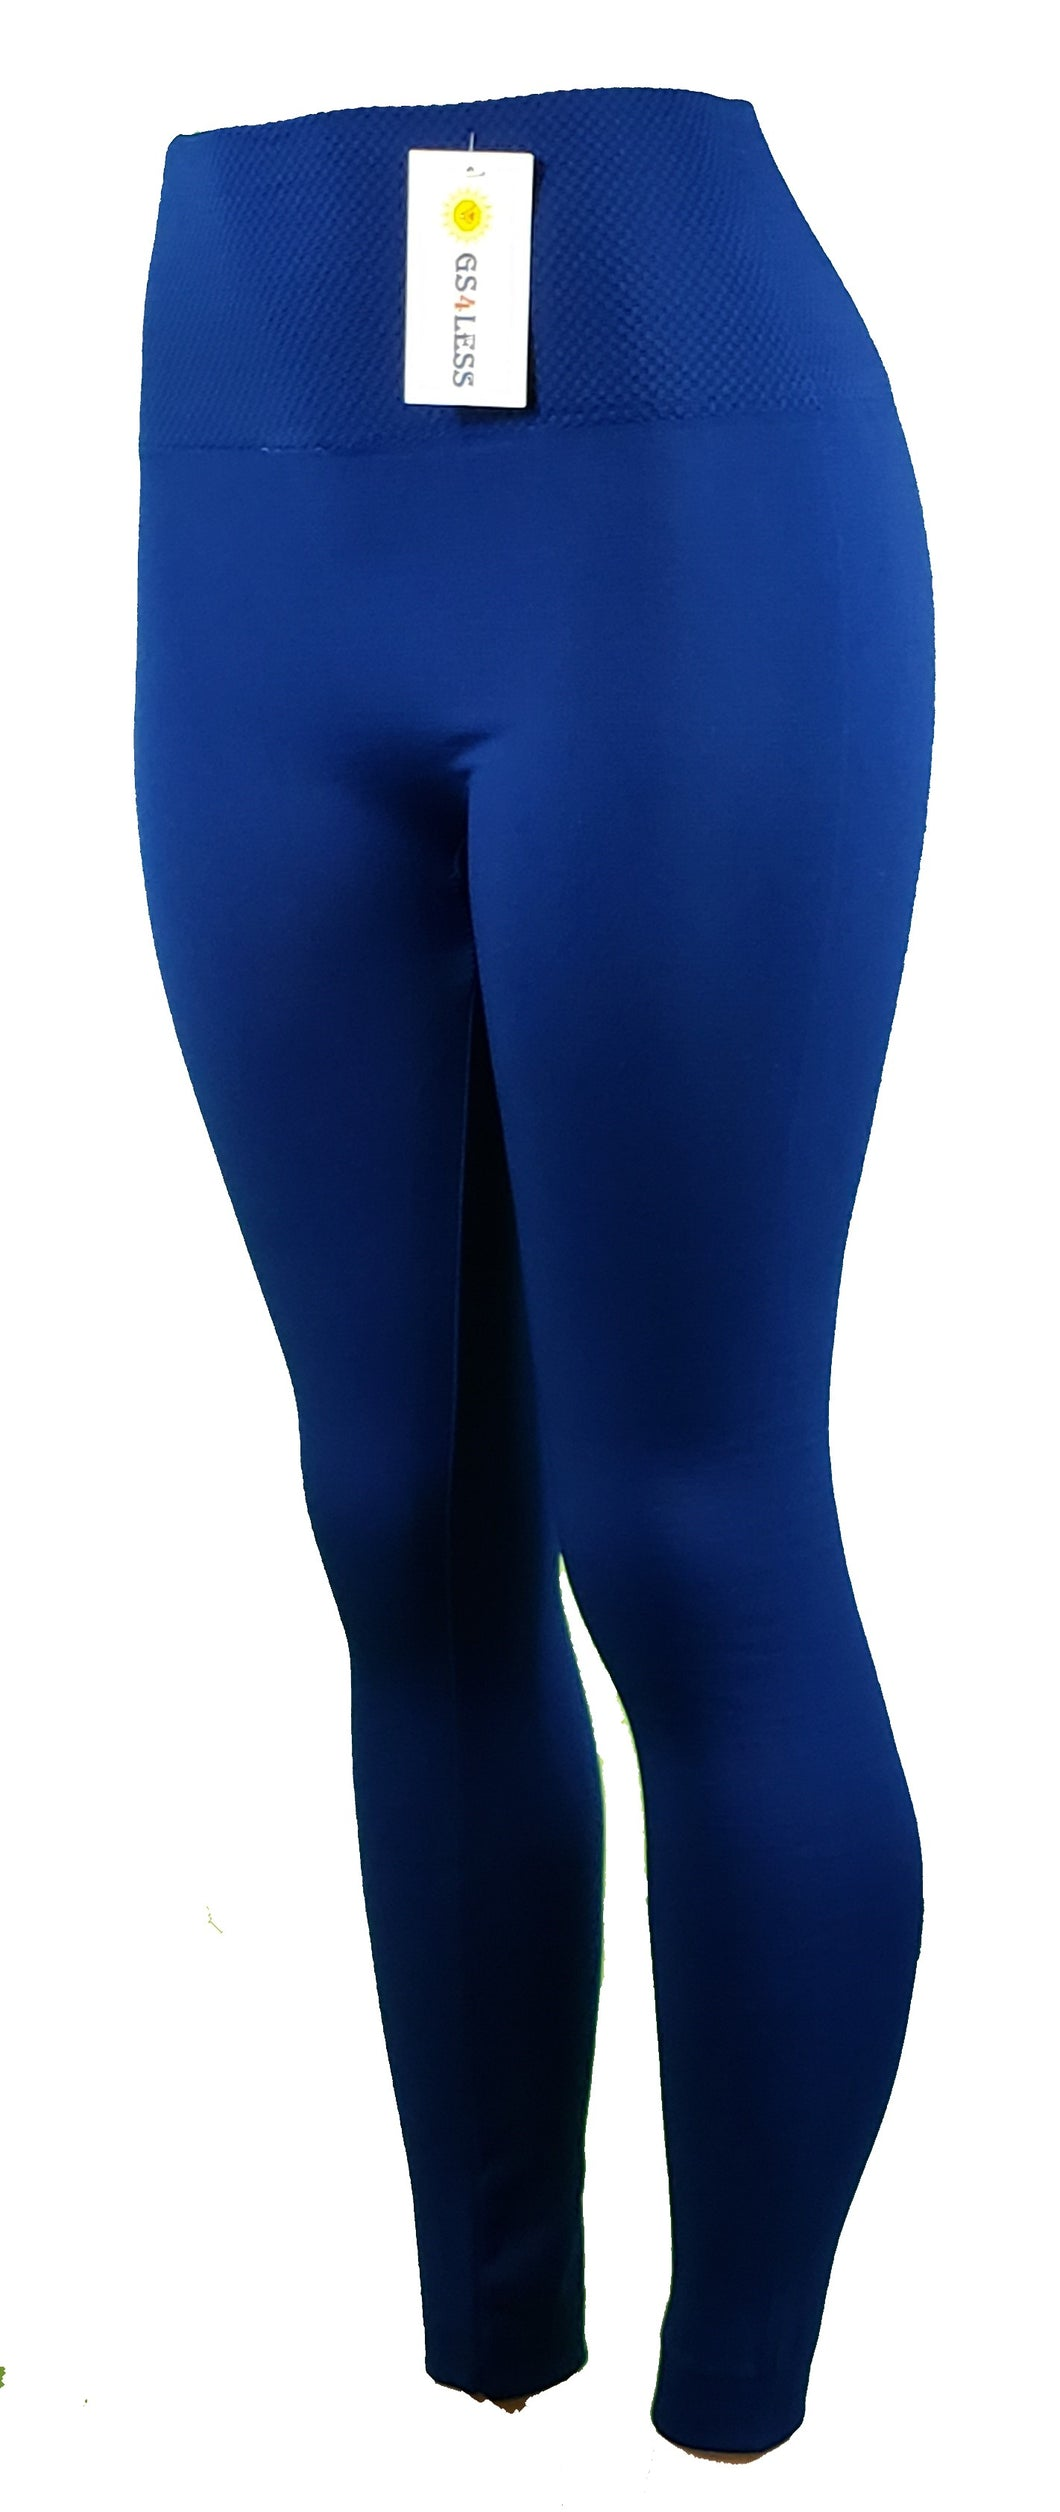 GS4LESS Women's Blue One Size Casual Leggings